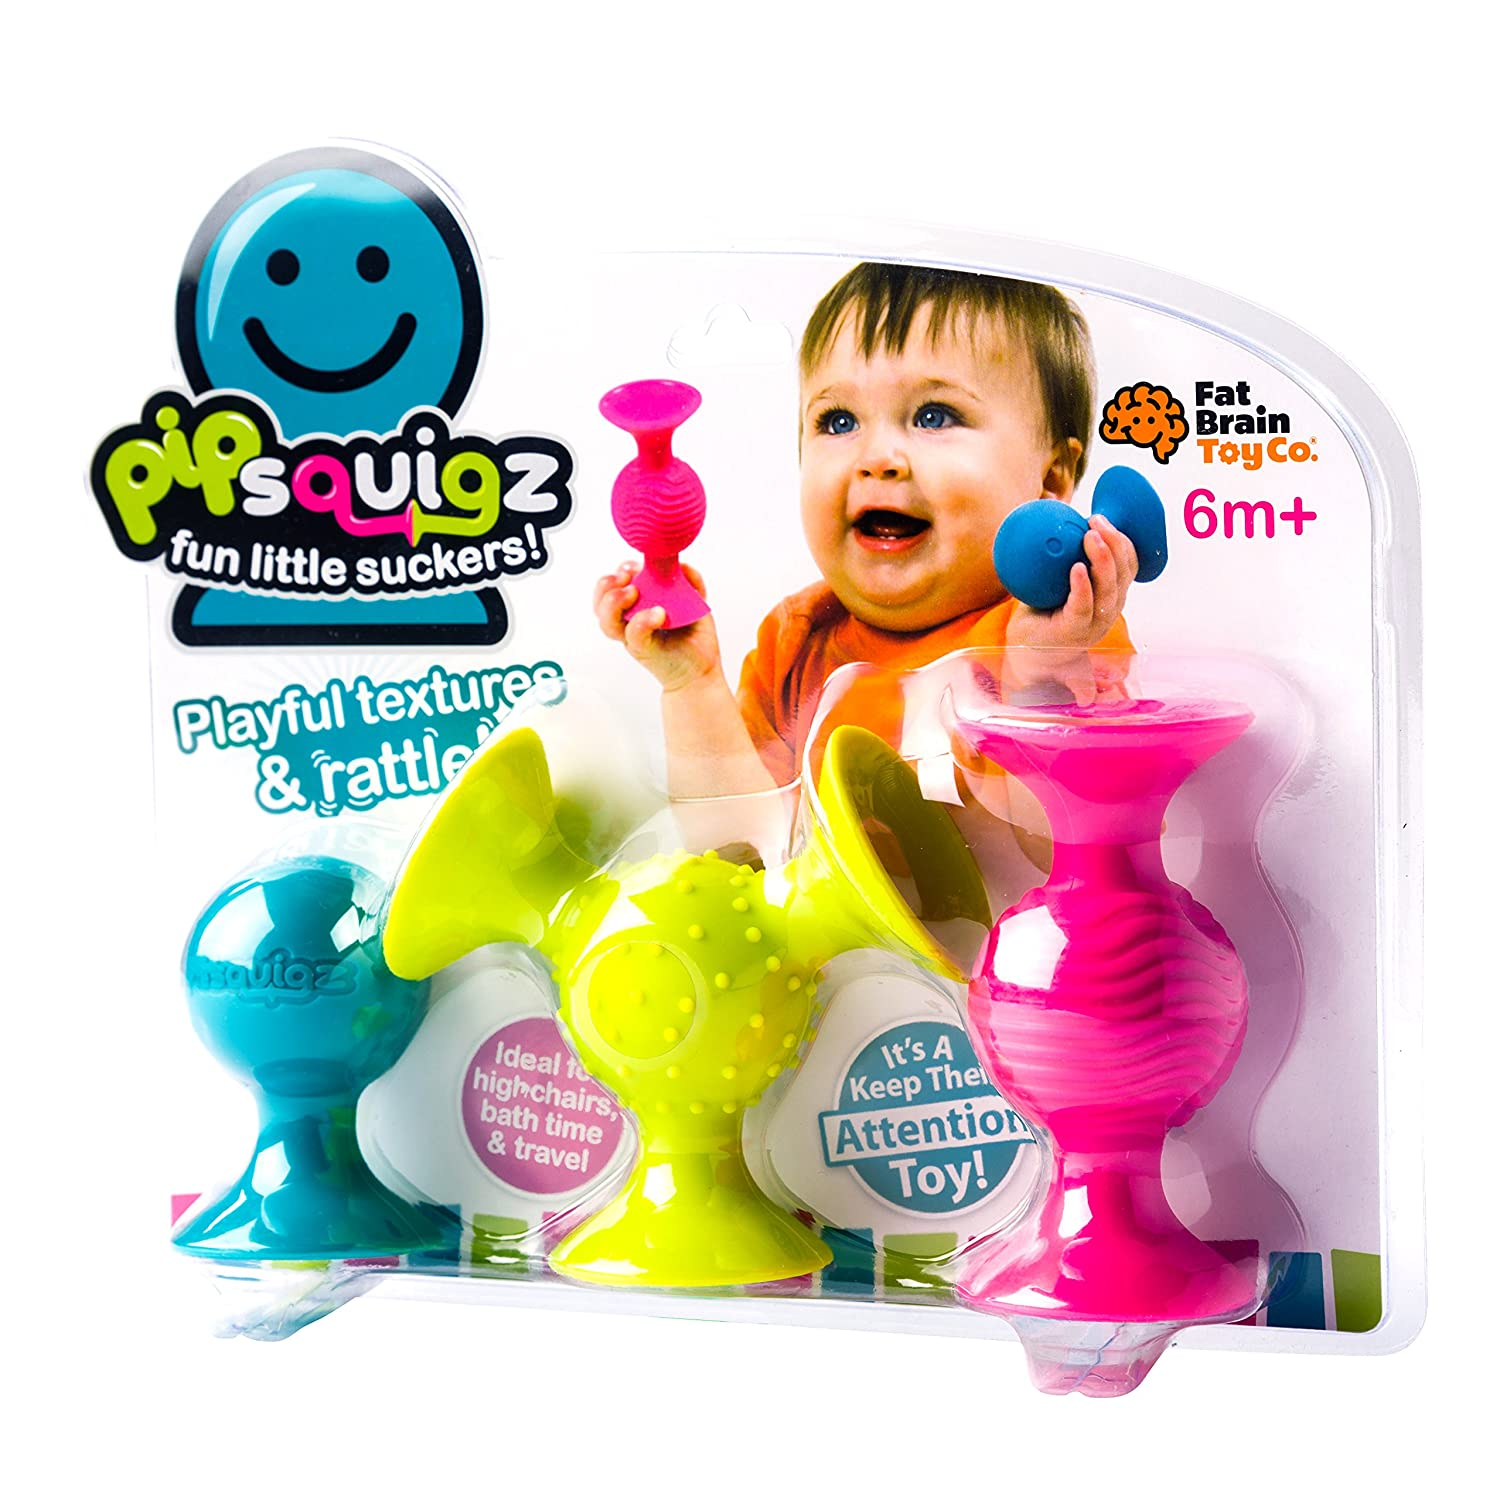 Buy Fat Brain Toys Pipsquigz Multi Color line at Low Prices in